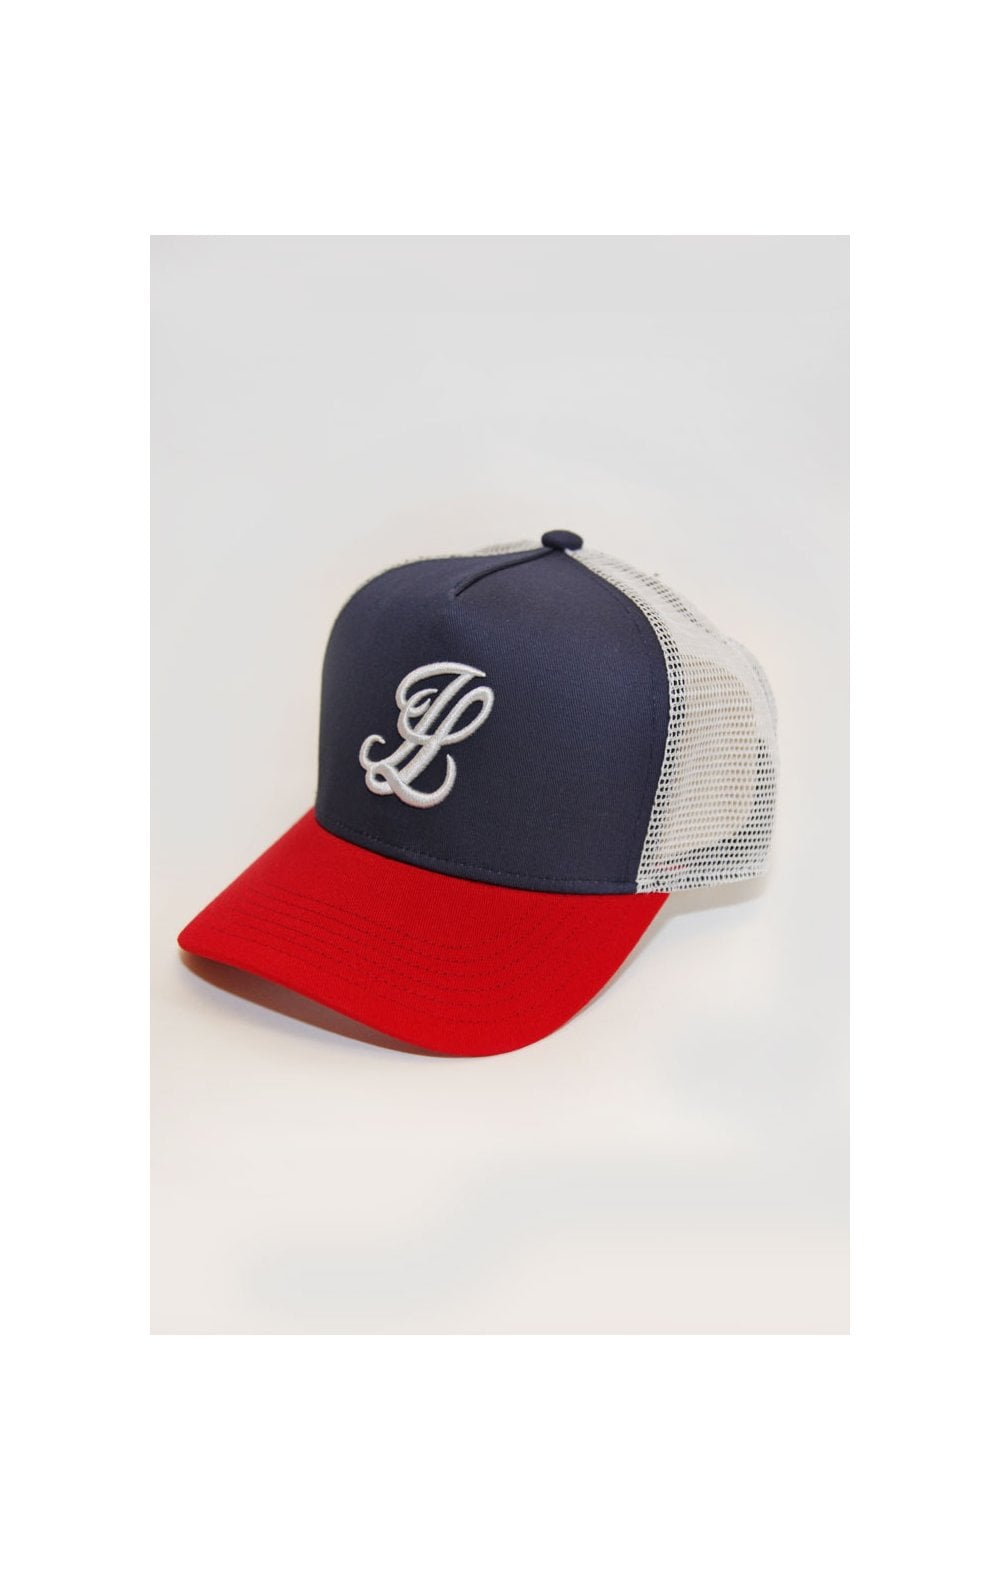 Load image into Gallery viewer, Illusive London Mesh Trucker - Navy, Red & White